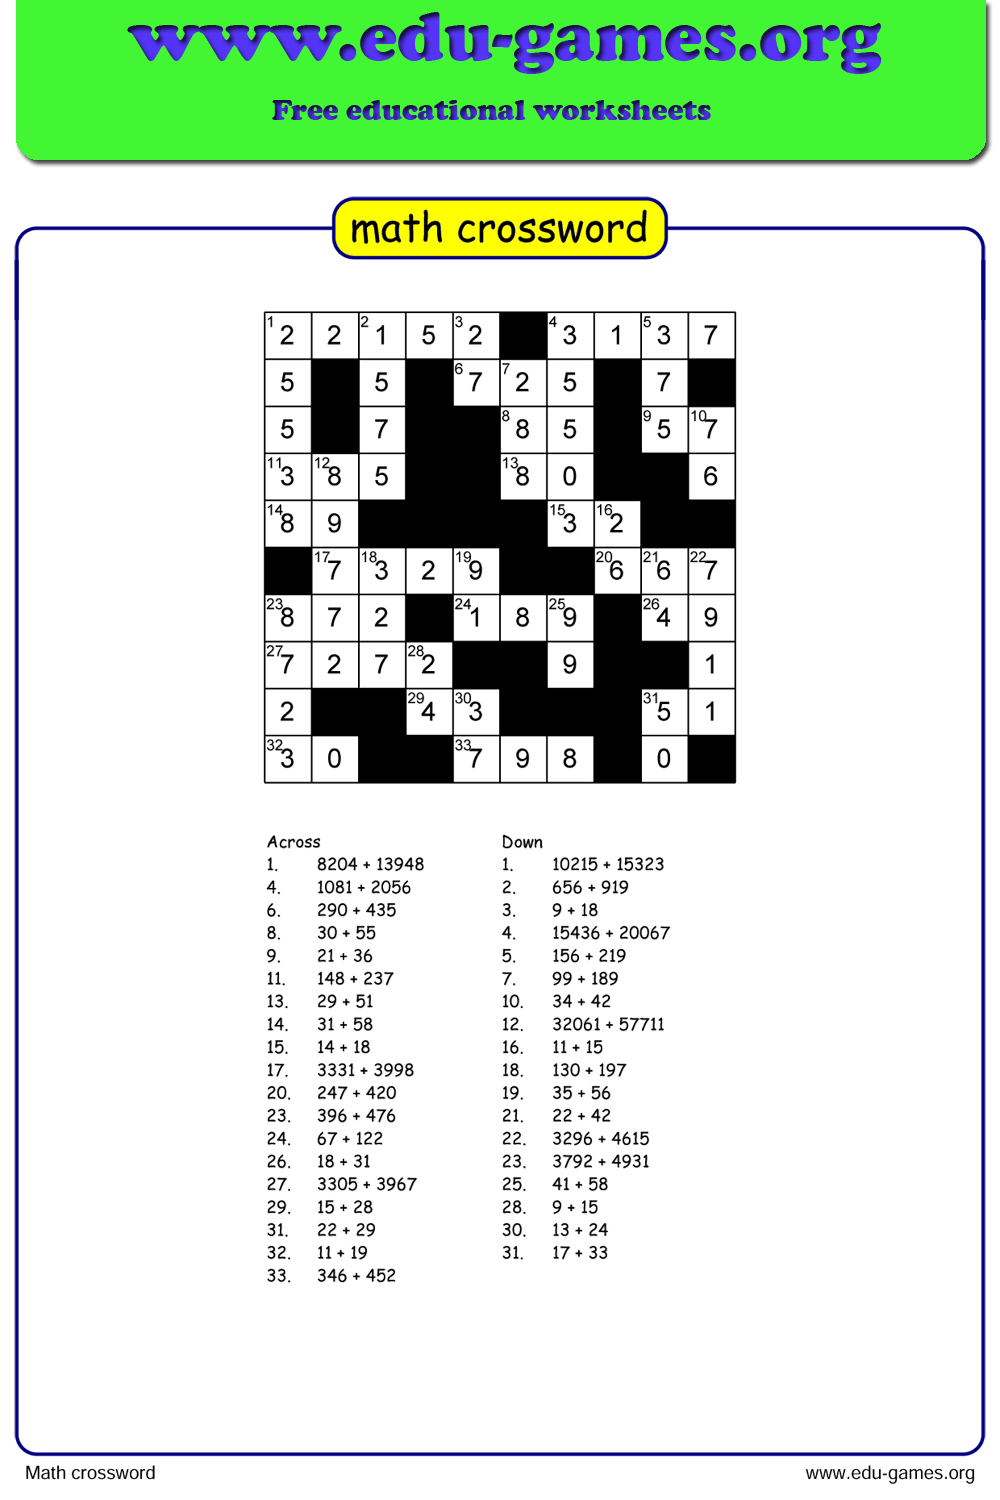 Math Crossword Puzzle Maker - Free Printable Worksheets - Printable Math Crossword Puzzles